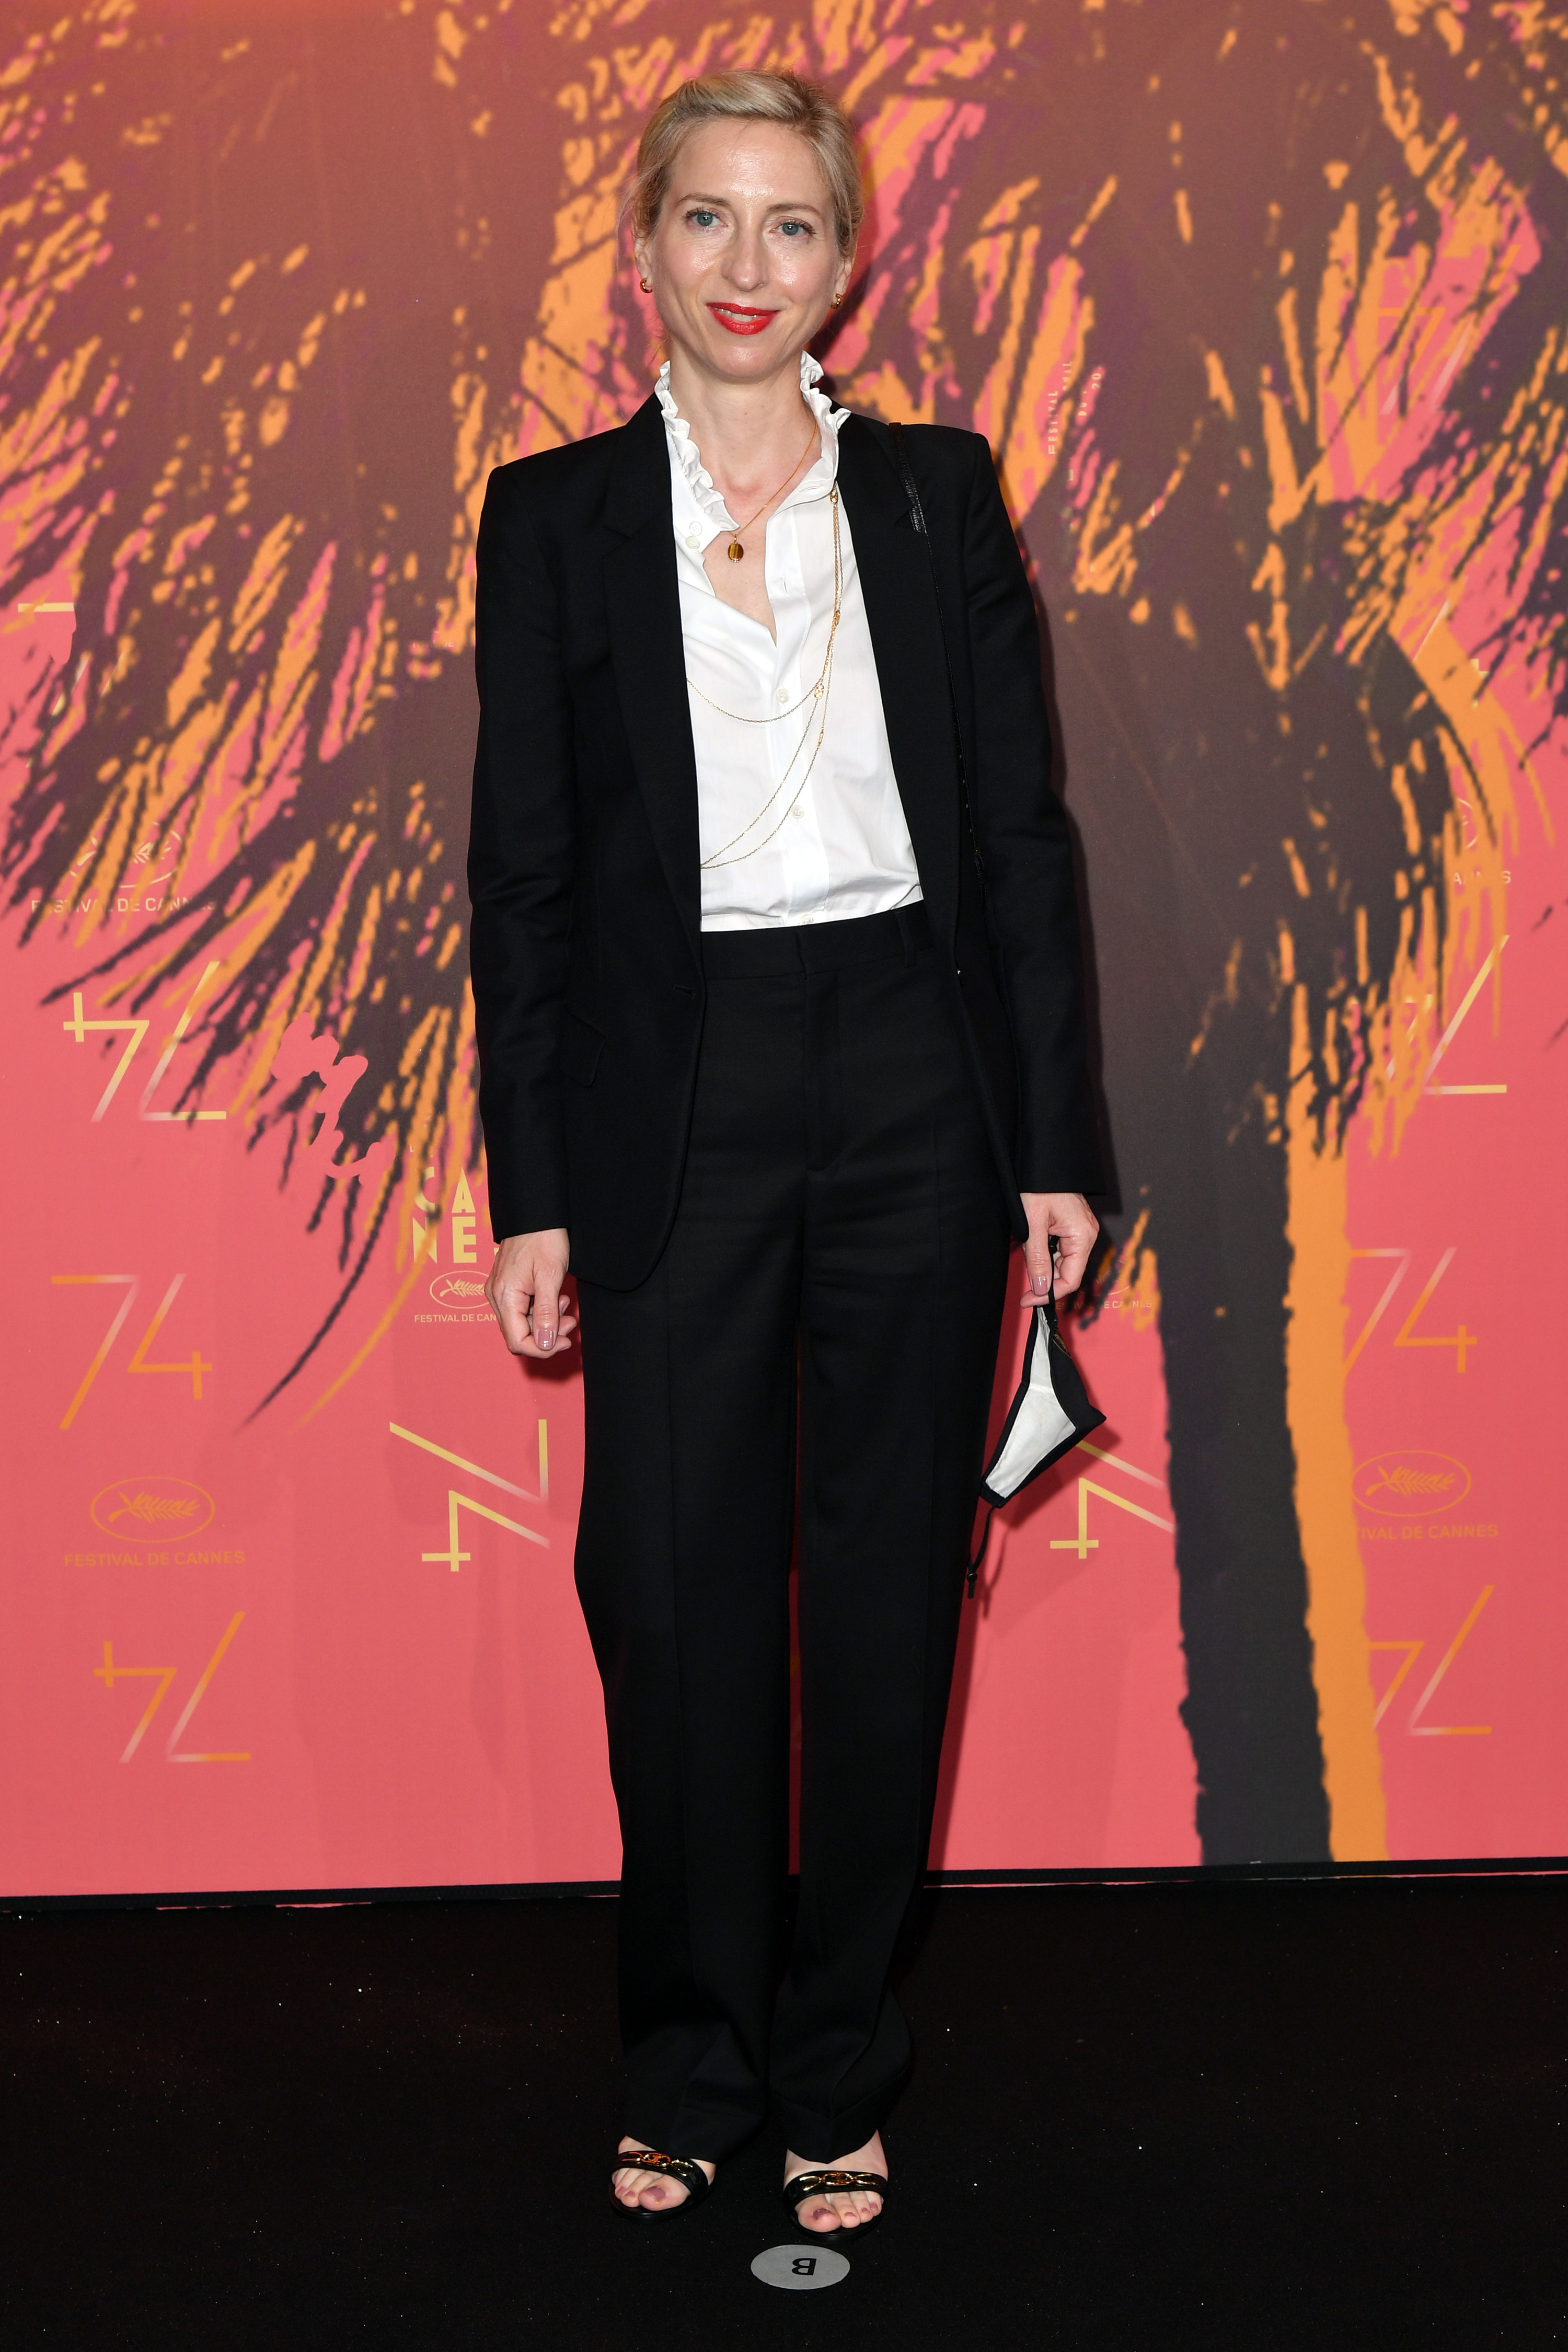 Jessica Hausner at the Cannes Film Festival